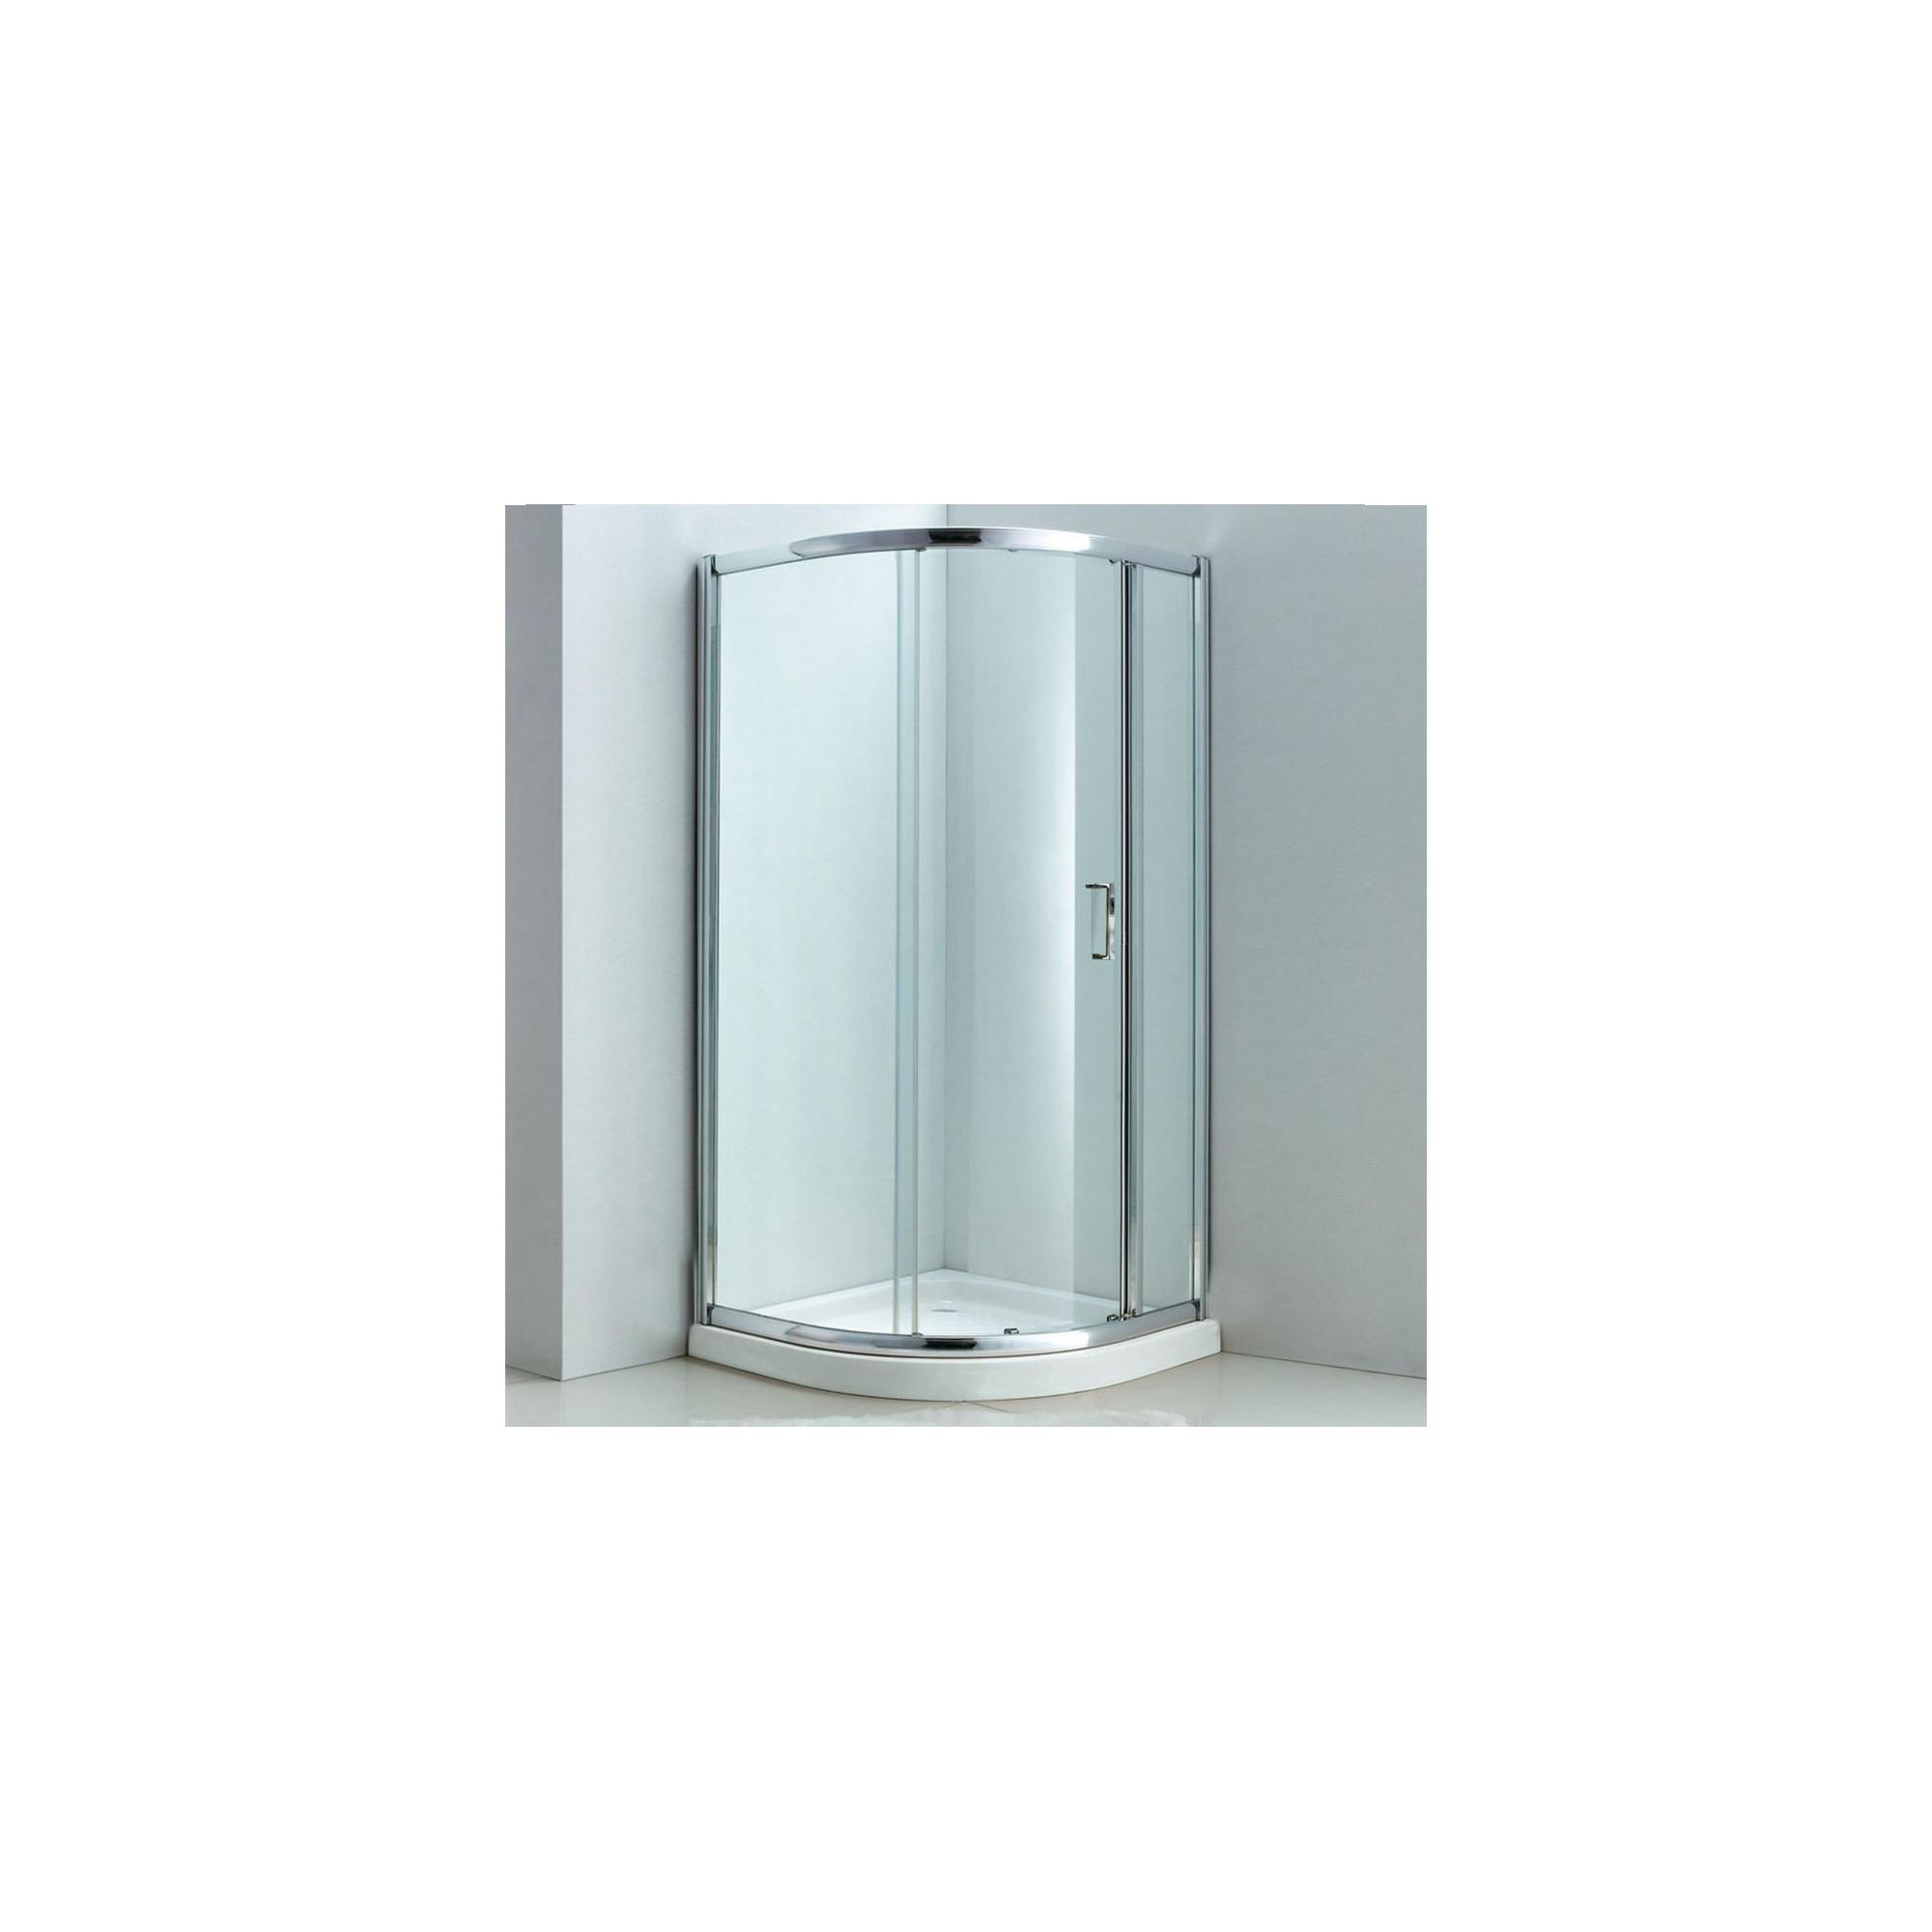 Duchy Style Single Offset Quadrant Door Shower Enclosure, 1000mm x 800mm, 6mm Glass, Low Profile Tray, Right Handed at Tescos Direct